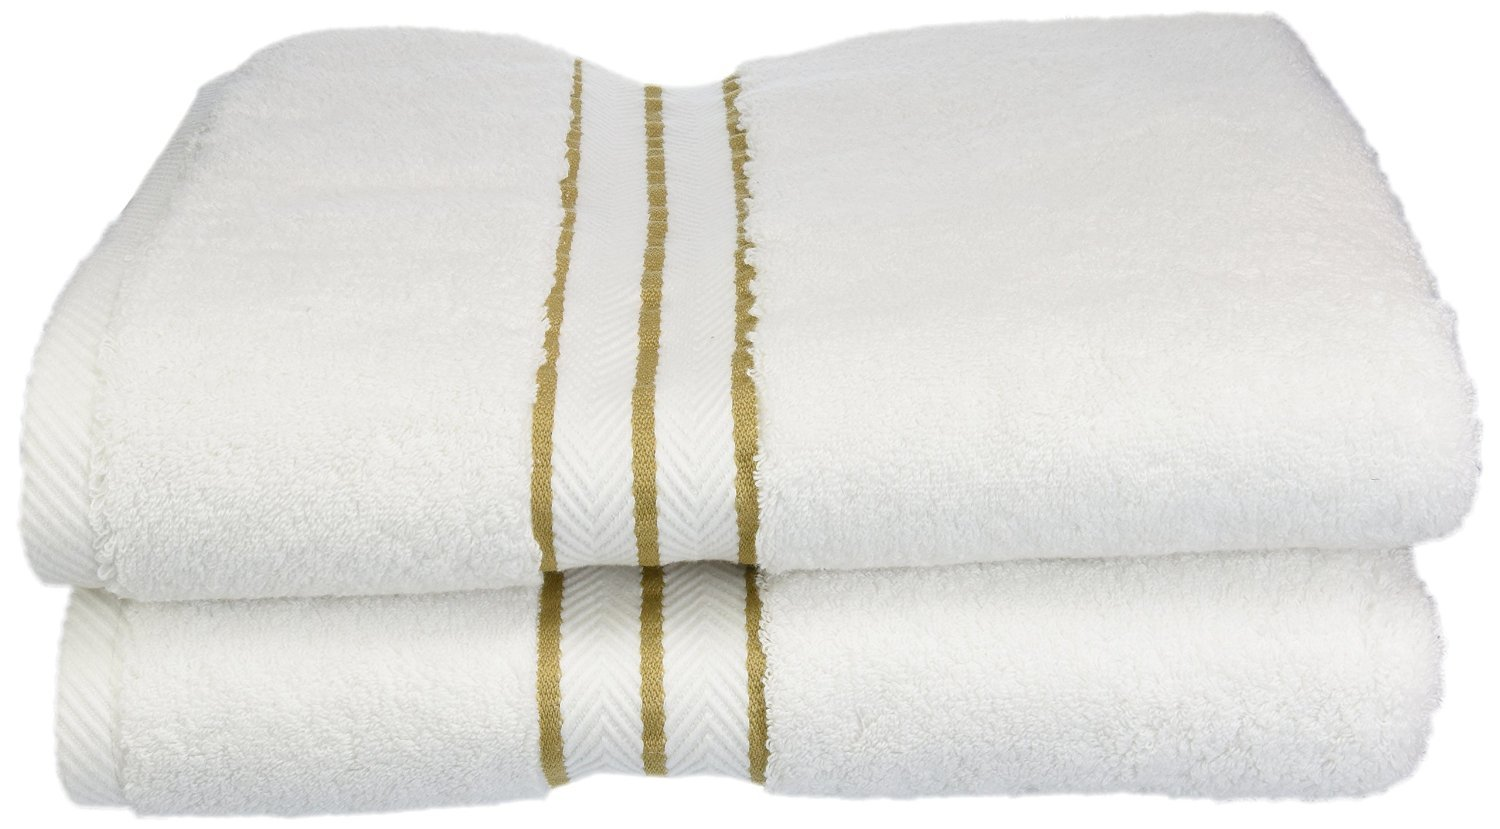 Superior Hotel Collection 900 Gram, 100% Premium Long-Staple Combed Cotton 2 Piece Bath Towel Set, White with Toast Border